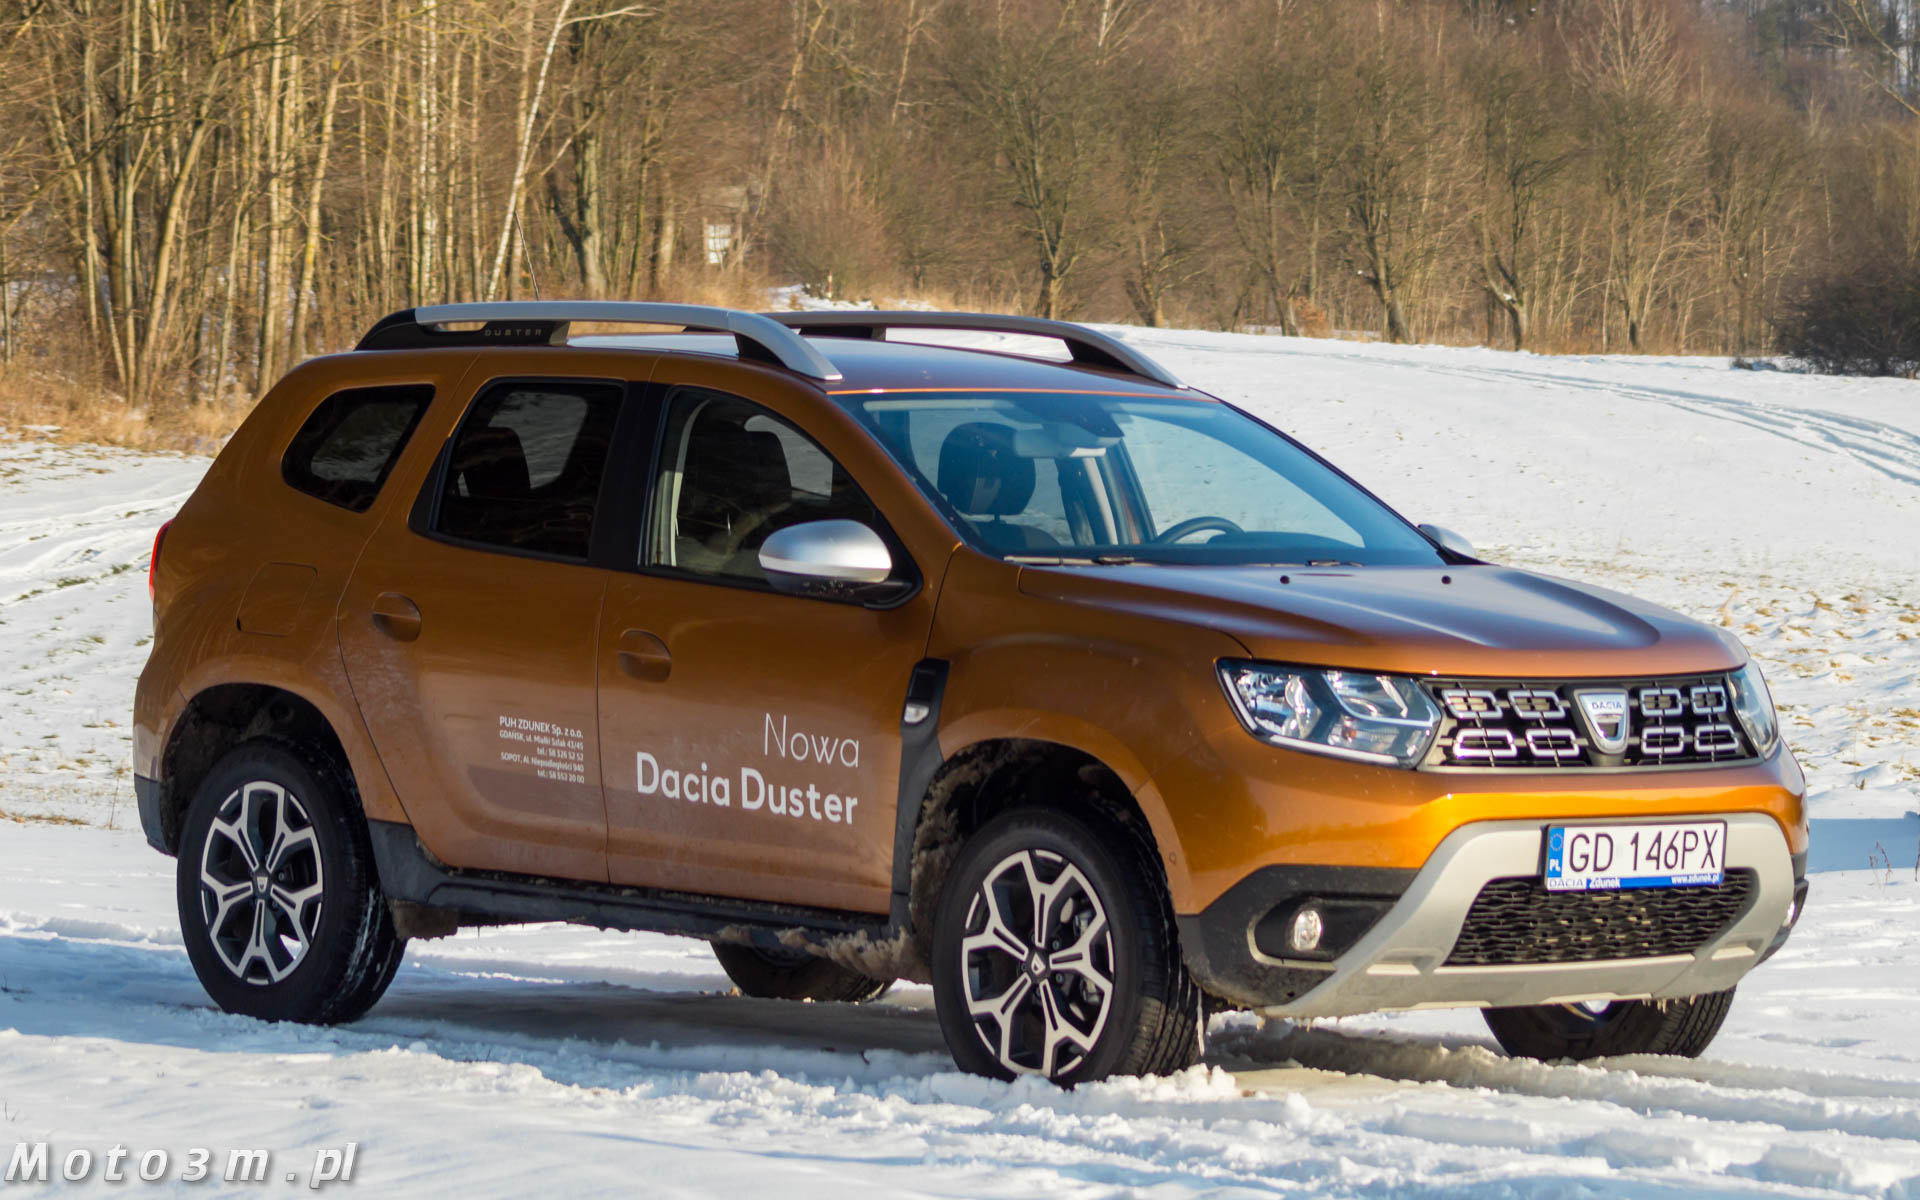 dacia duster ii 1 5 dci prestige nowa lepsza i wci tania. Black Bedroom Furniture Sets. Home Design Ideas